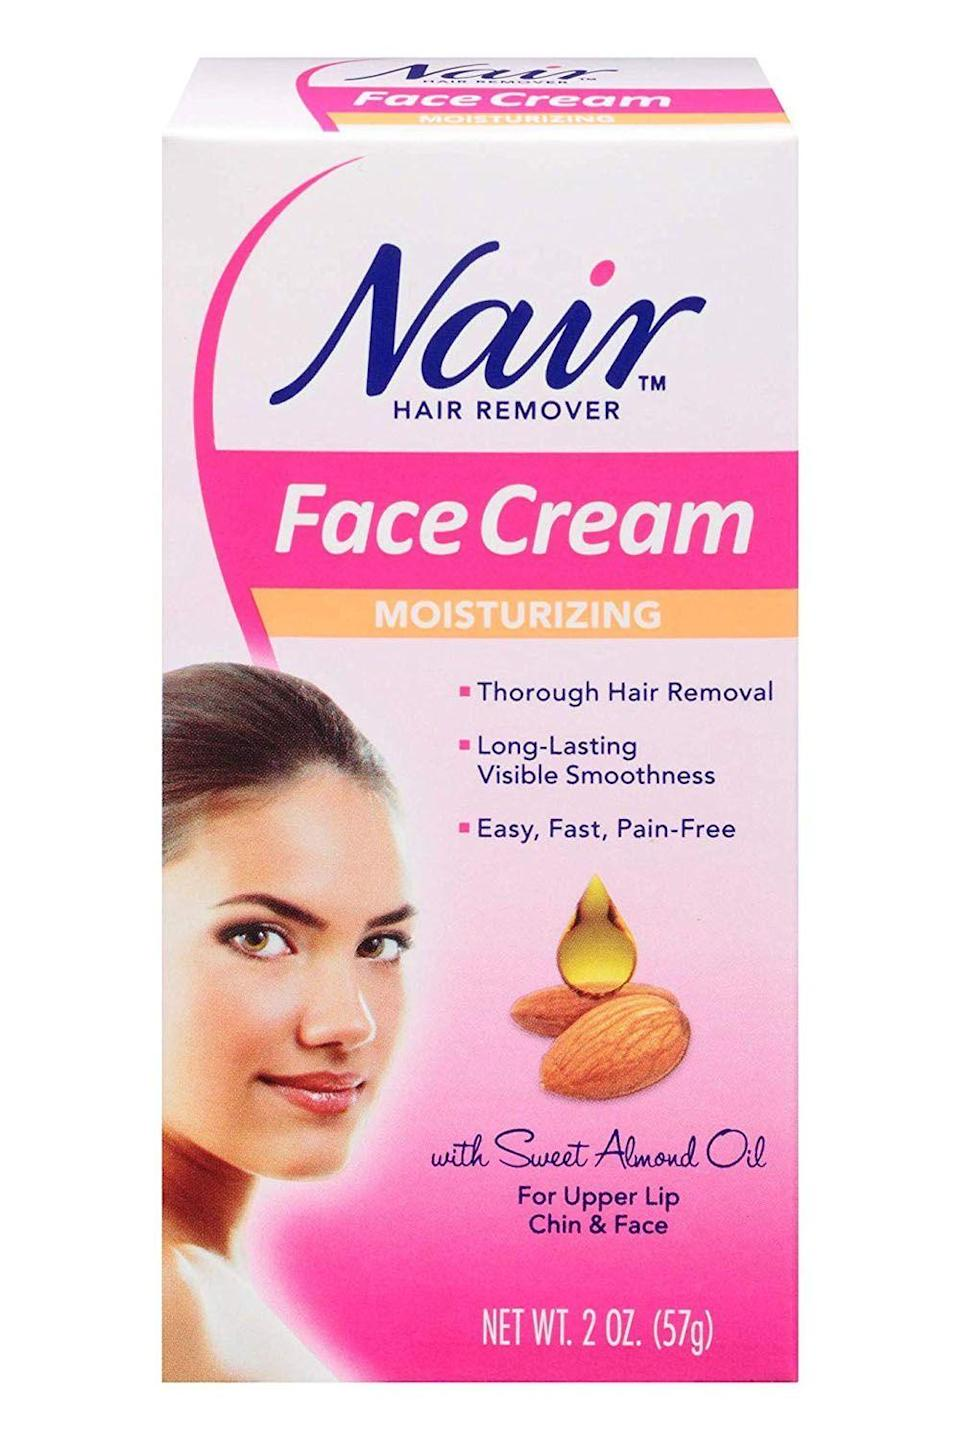 """<p><strong>Nair</strong></p><p>walmart.com</p><p><strong>$3.68</strong></p><p><a href=""""https://go.redirectingat.com?id=74968X1596630&url=https%3A%2F%2Fwww.walmart.com%2Fip%2F876459&sref=https%3A%2F%2Fwww.cosmopolitan.com%2Fstyle-beauty%2Fbeauty%2Fg28433811%2Fbest-hair-removal-creams%2F"""" rel=""""nofollow noopener"""" target=""""_blank"""" data-ylk=""""slk:Shop Now"""" class=""""link rapid-noclick-resp"""">Shop Now</a></p><p>Some hair removal creams can be drying and leave your skin feeling super tight. Not this one—it's formulated with sweet almond oil (a gentle, <a href=""""https://www.cosmopolitan.com/style-beauty/beauty/g27126744/moisturizer-sensitive-skin/"""" rel=""""nofollow noopener"""" target=""""_blank"""" data-ylk=""""slk:moisturizing"""" class=""""link rapid-noclick-resp"""">moisturizing</a> ingredient) to <strong>ensure your post–hair removal skin feels as soft as butter.</strong> (P.S. If your hair is on the coarse side, you can leave the cream on for up to 10 minutes.)</p>"""